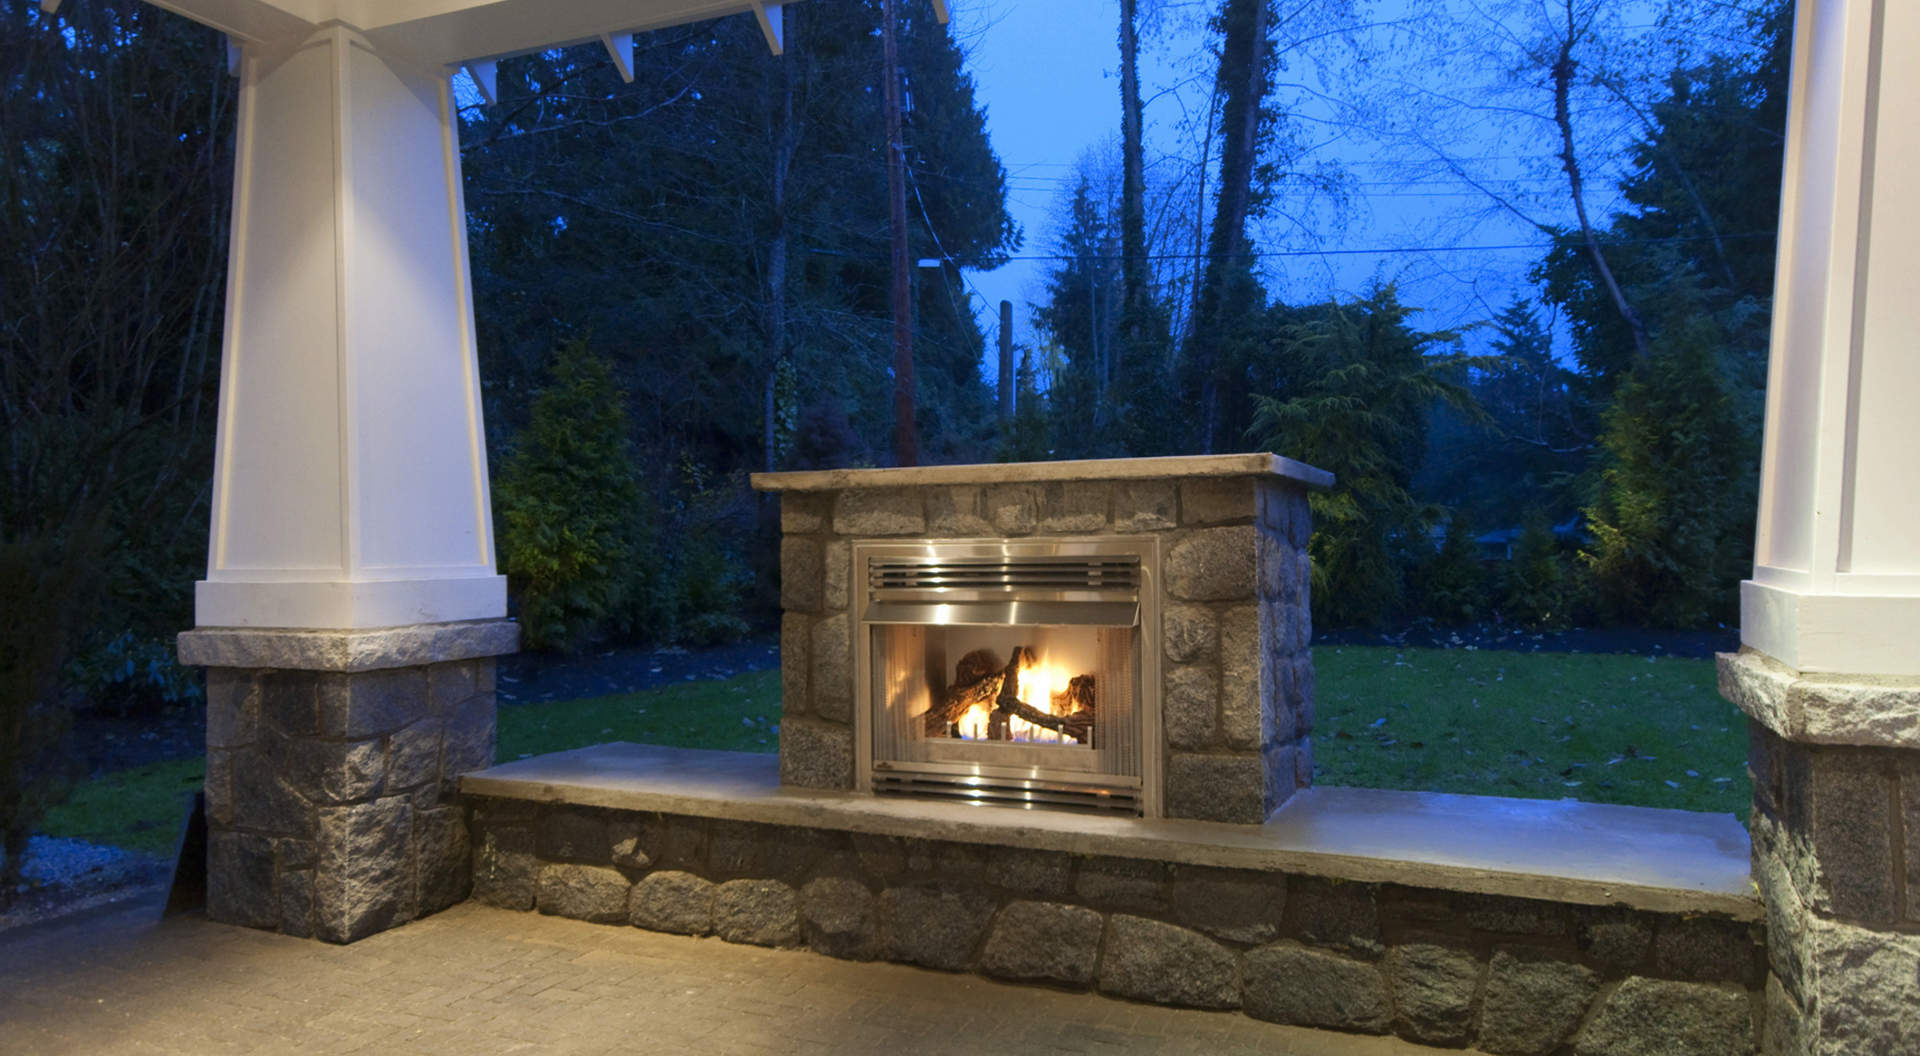 Outdoor Fireplace and Covered Area